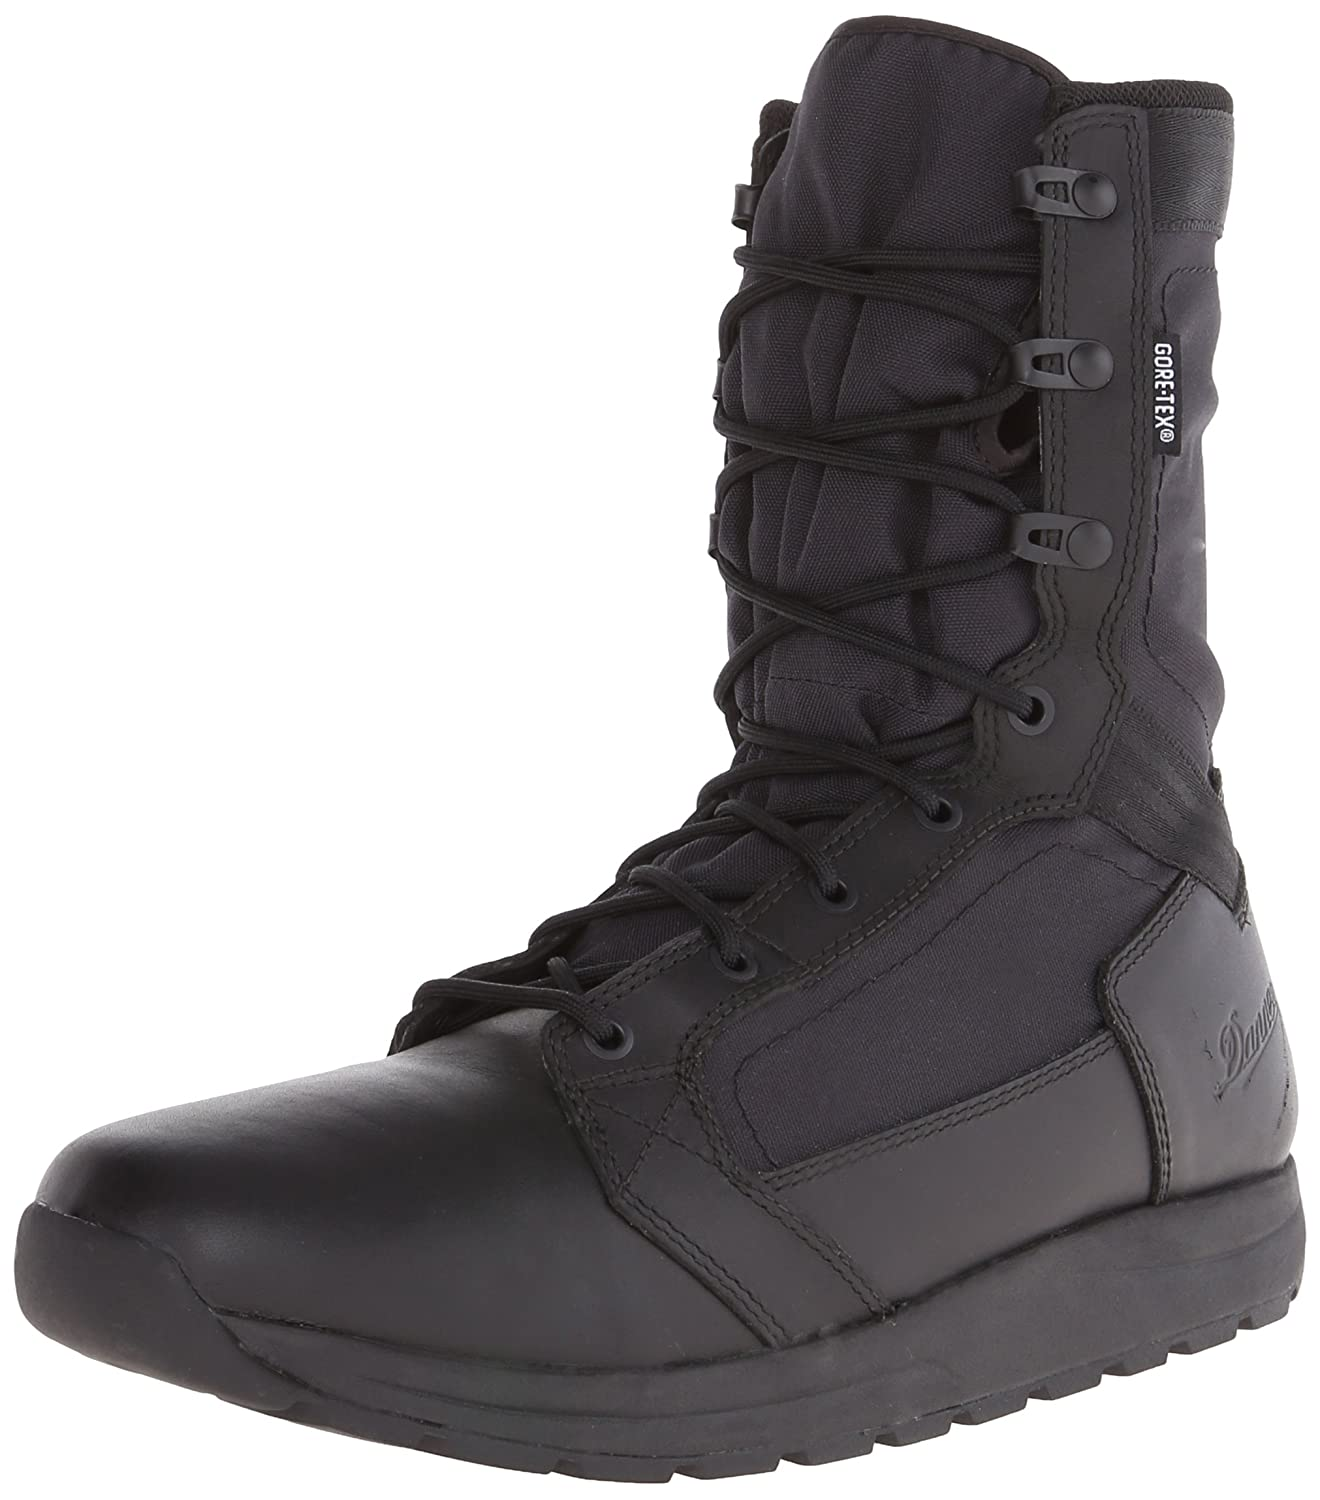 "Amazon.com: Danner Men&39s Tachyon 8"" GTX Duty Boot: Shoes"